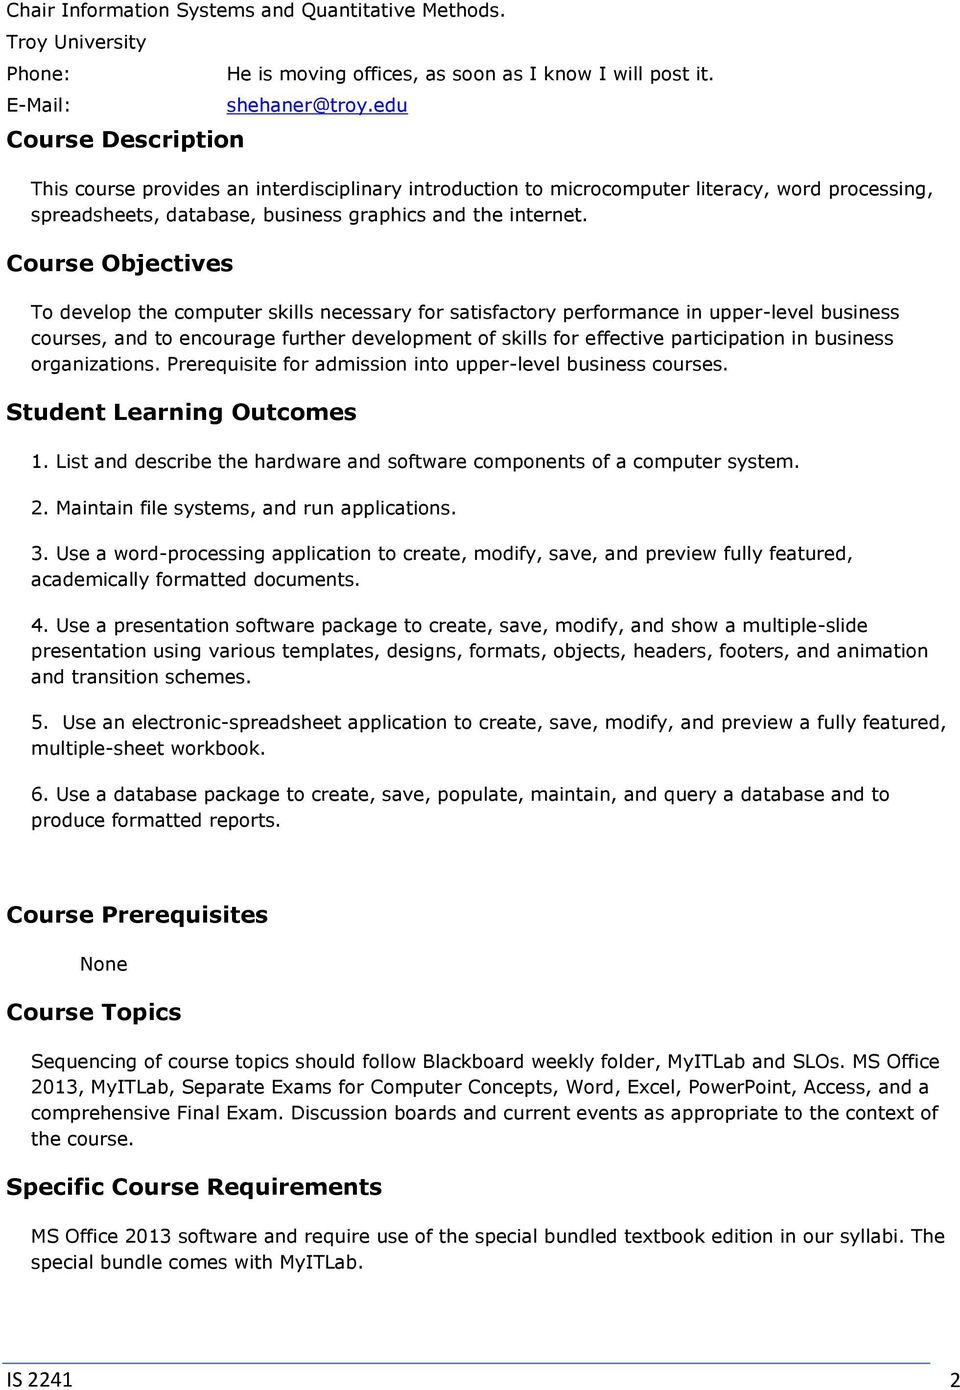 Course Objectives To develop the computer skills necessary for satisfactory performance in upper-level business courses, and to encourage further development of skills for effective participation in